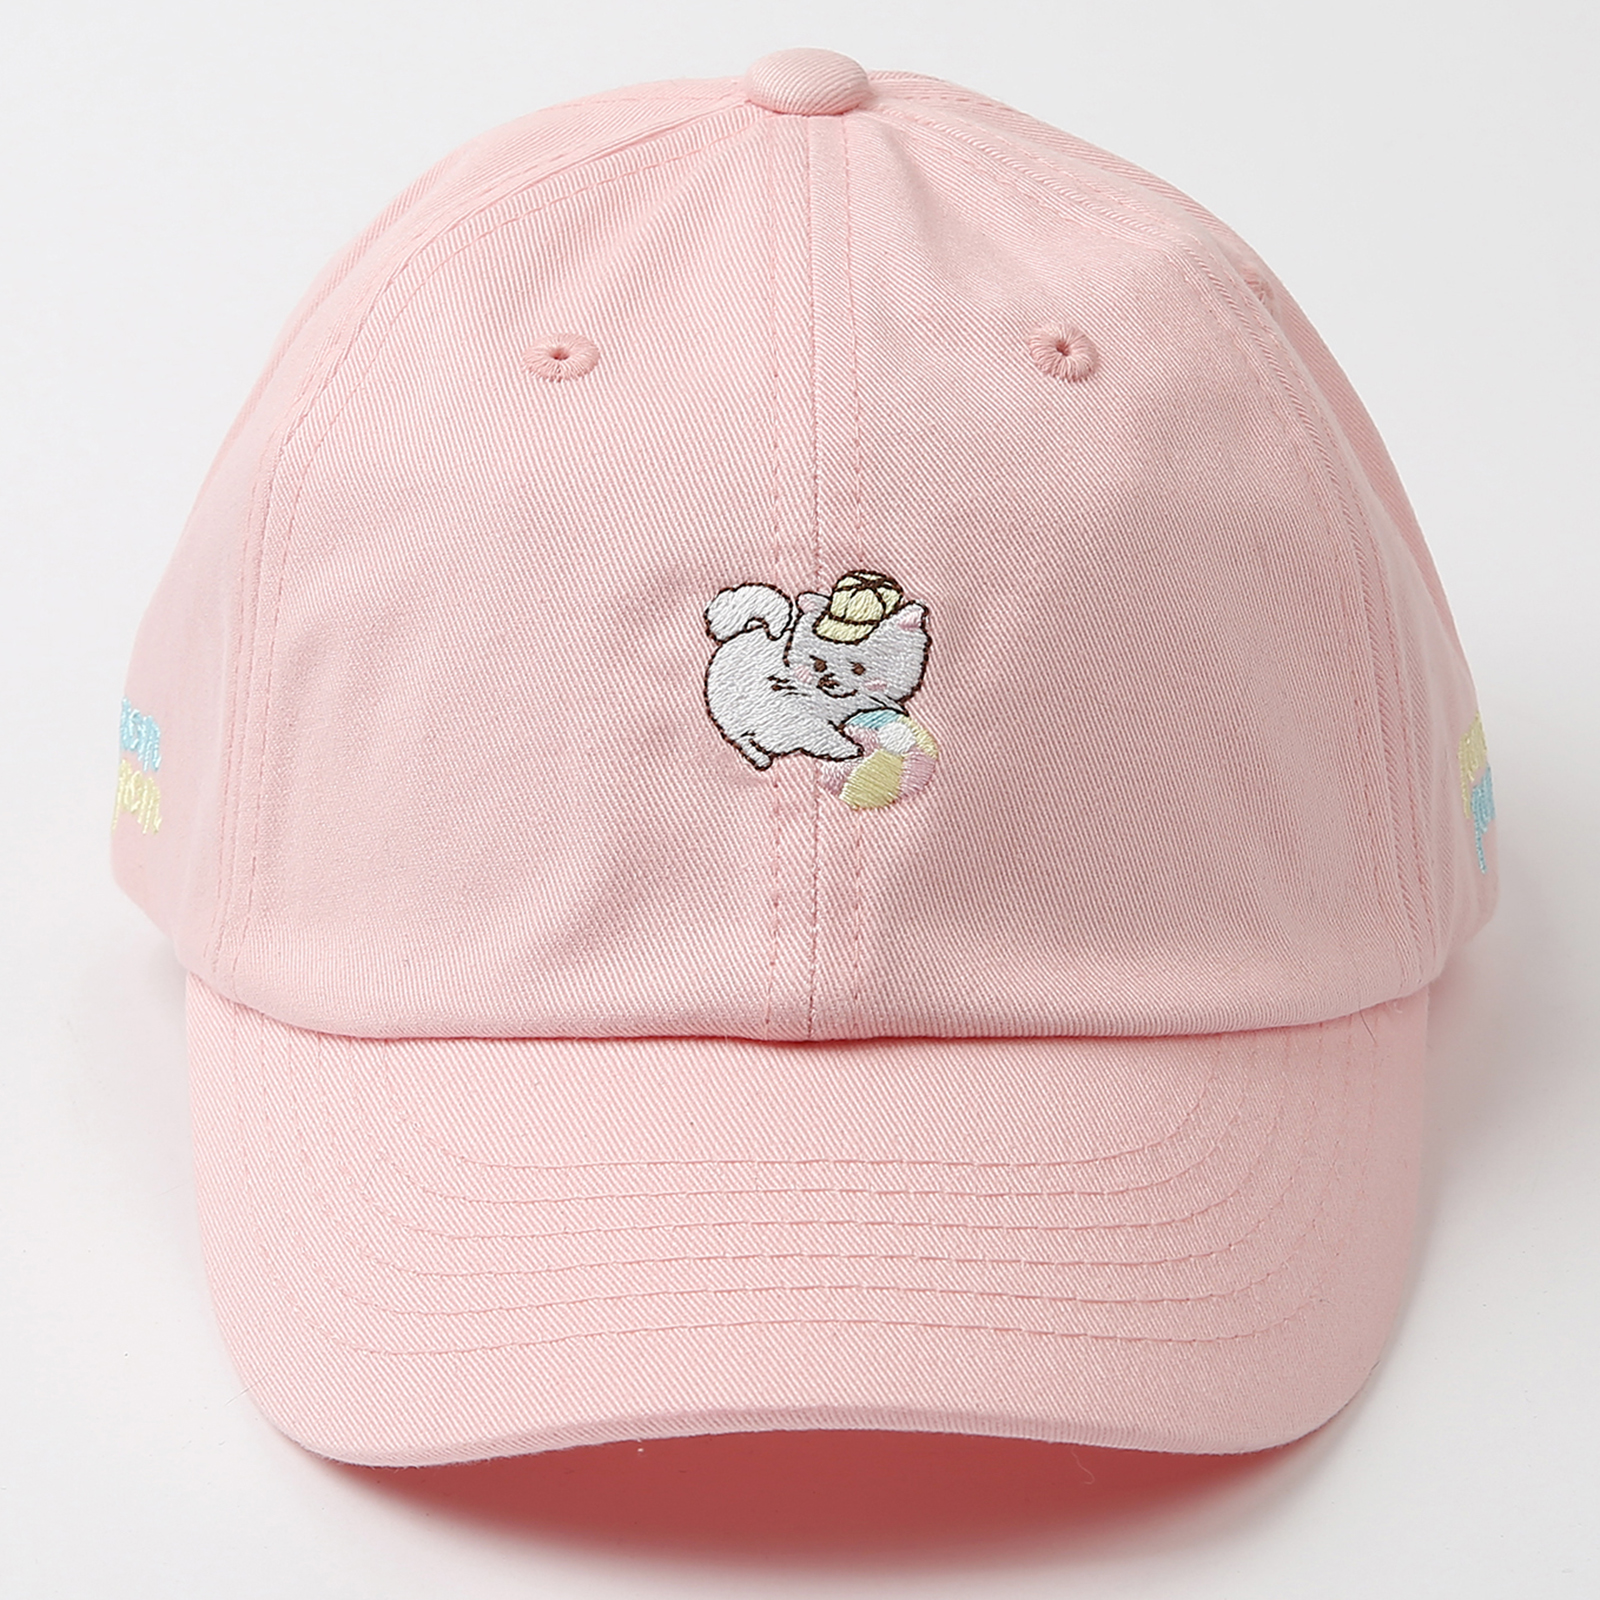 WITHMOONS Baseball Cap Cute Playing Cat Embroidery Pastel Cotton Hat AL11192